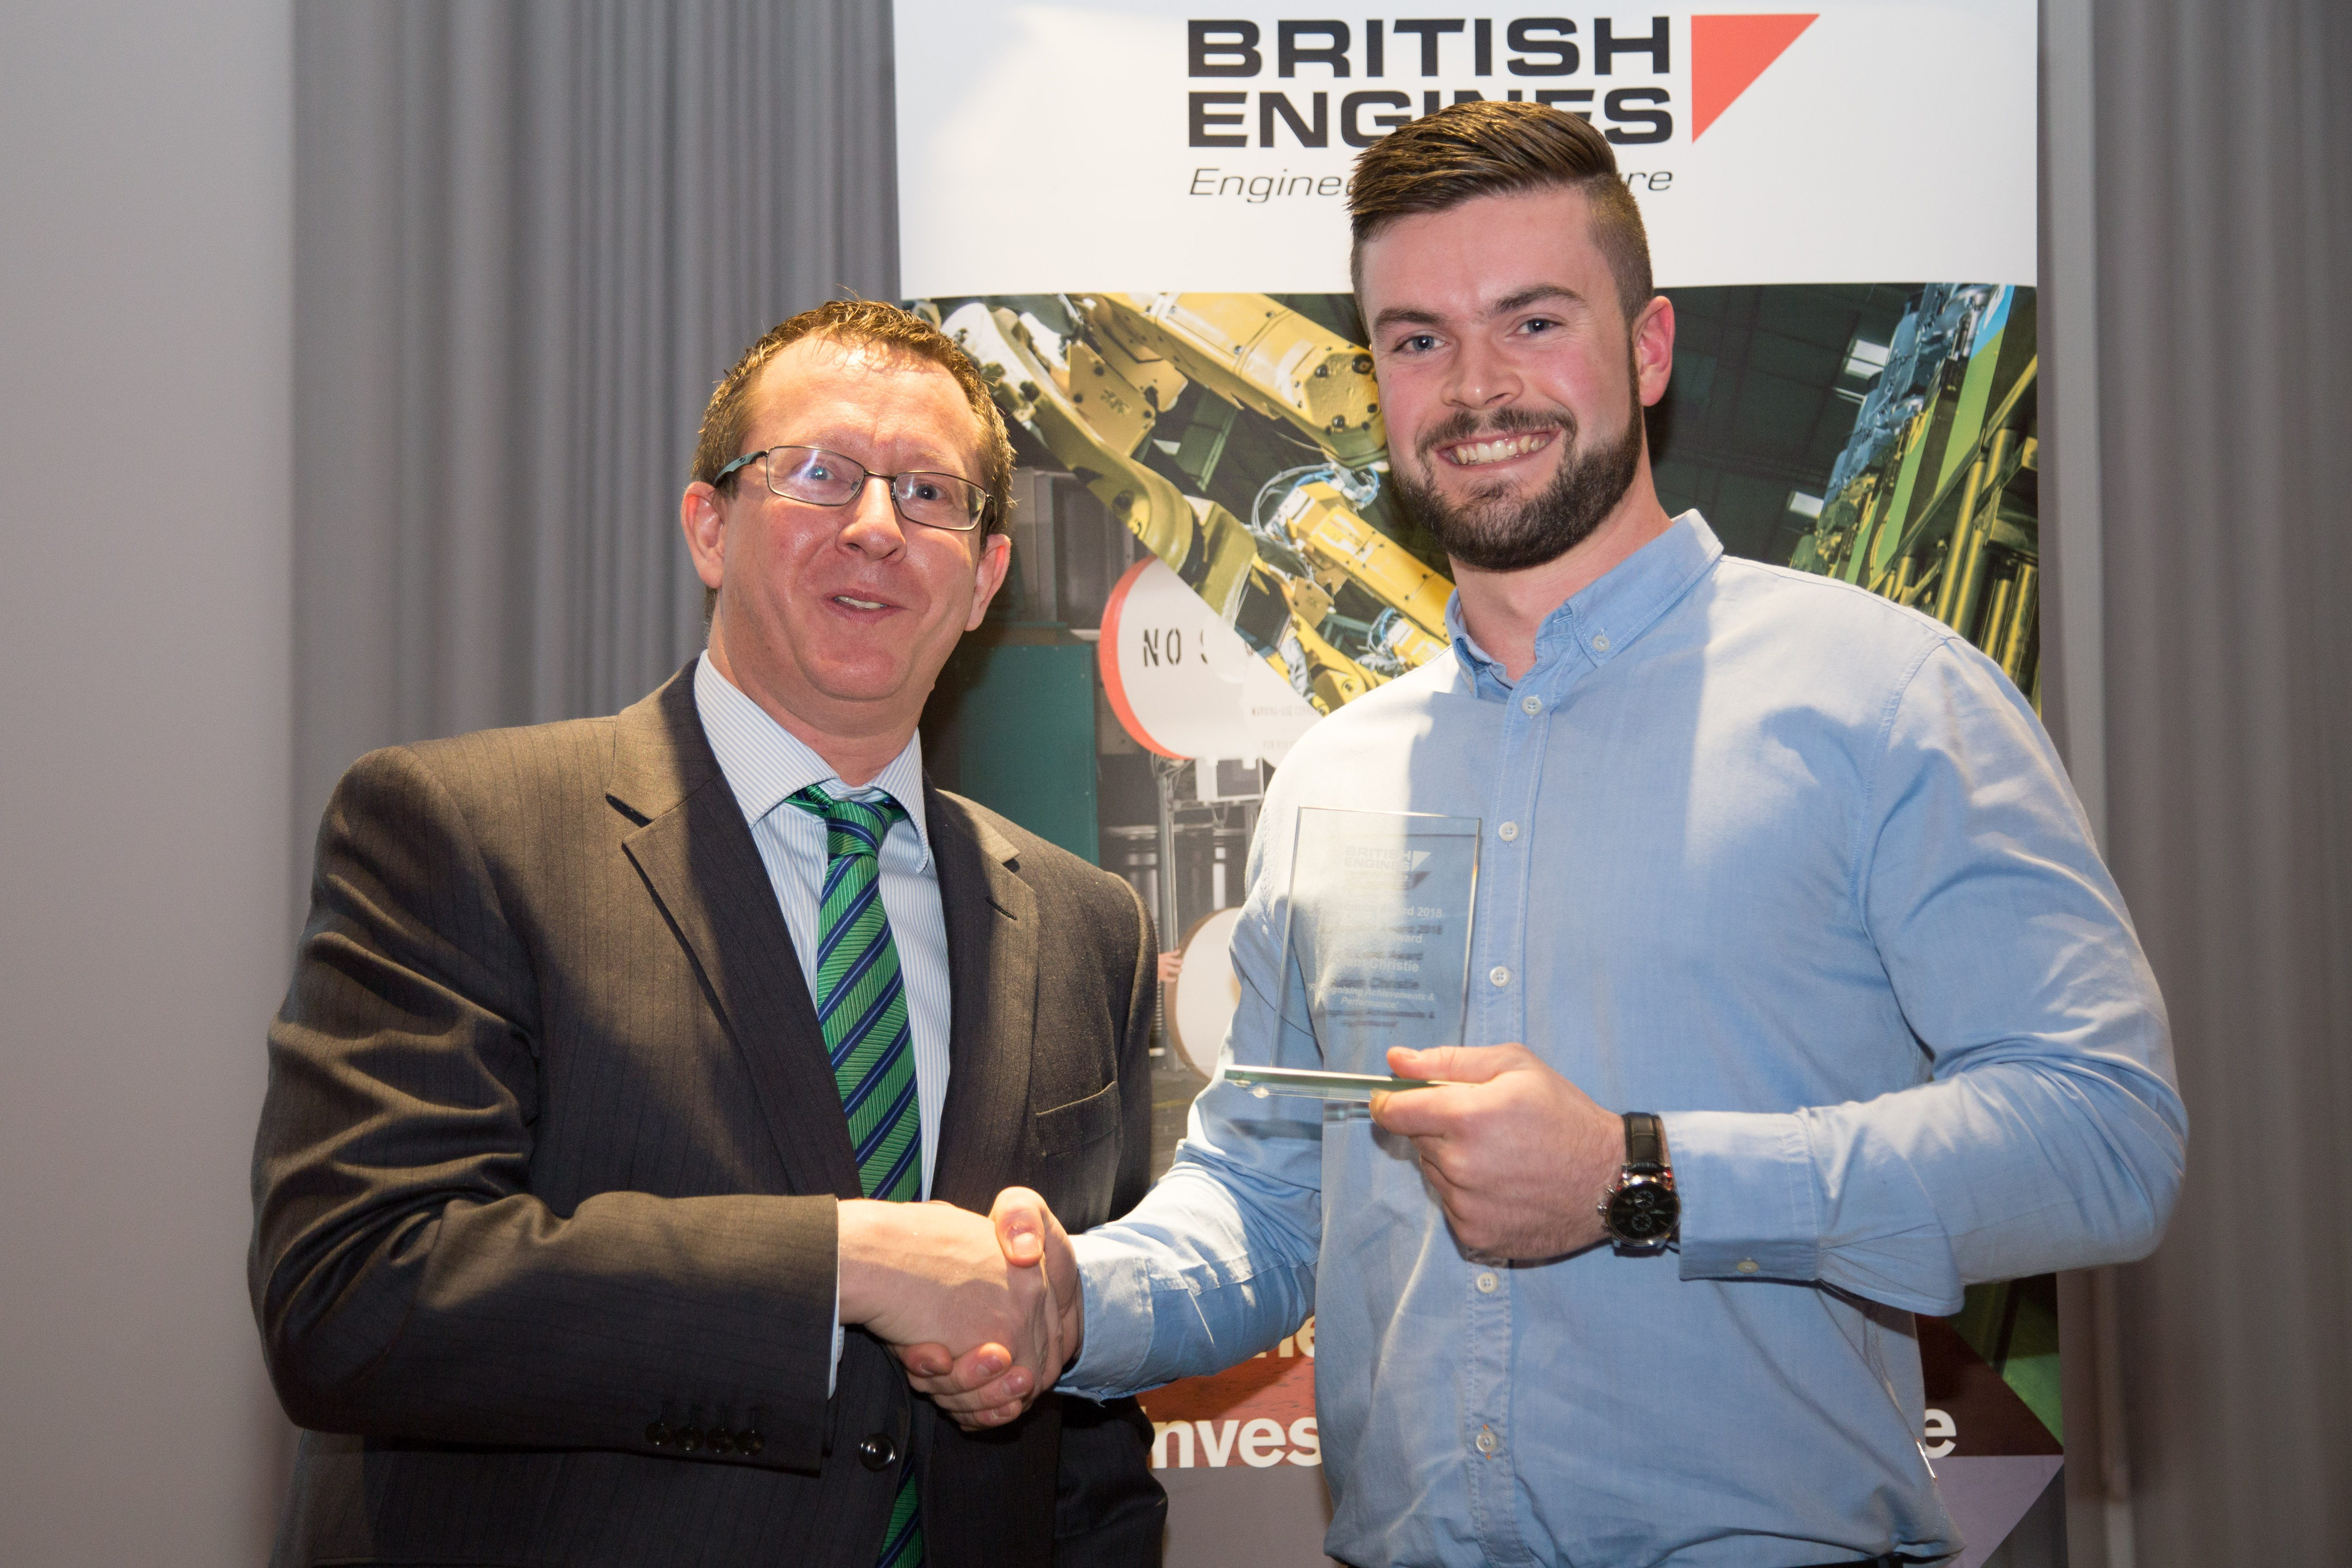 Adam winning the HT Lamb Award for his hard work as a British Engines apprentice developing his engineering career in the north east